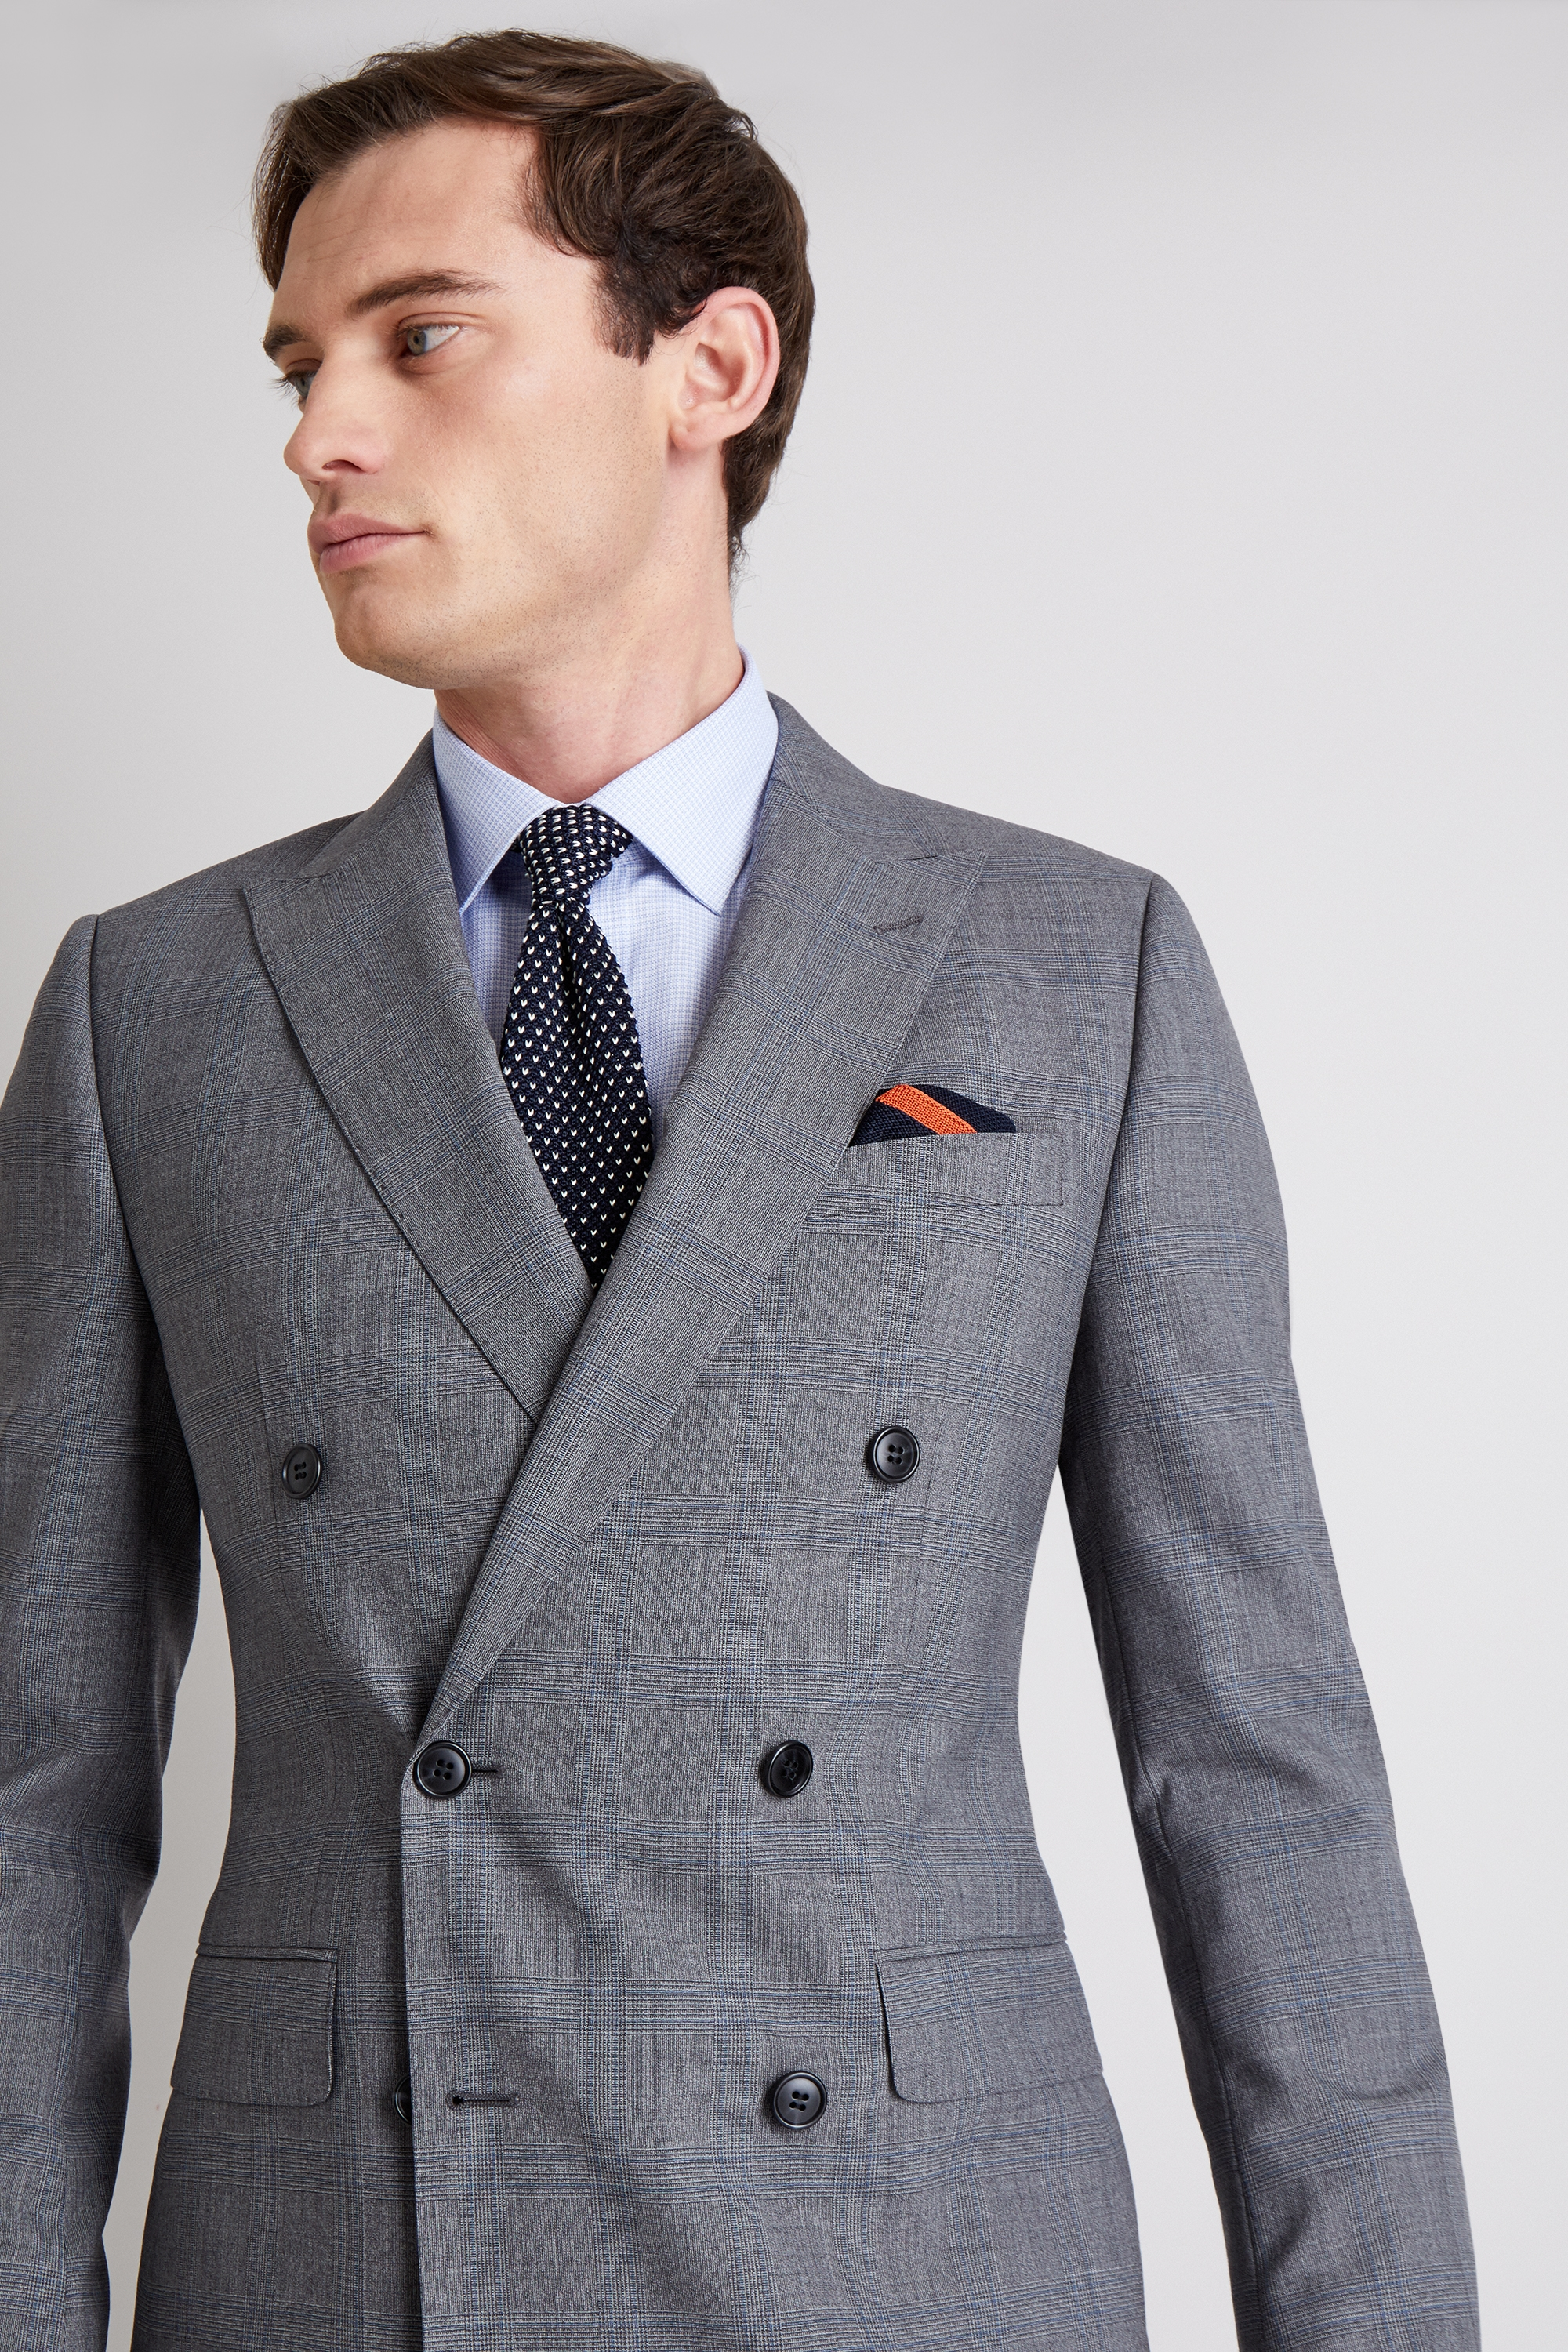 b4cdd27ca Details about Moss 1851 Mens Grey Blue Check Suit Jacket Tailored Fit  Double Breasted Blazer